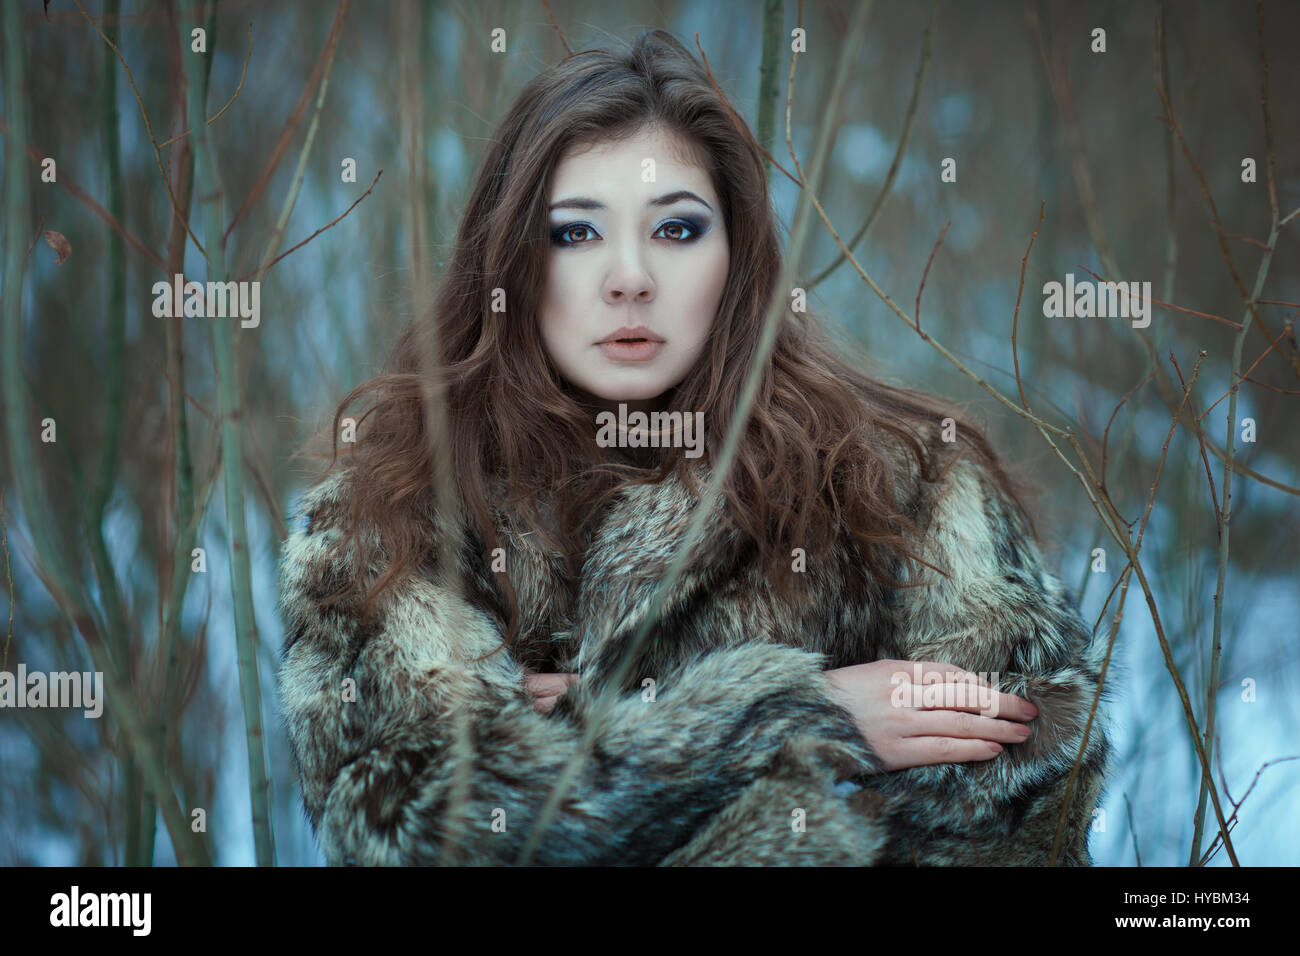 Portrait of a young woman in a winter park. On her fur coat. - Stock Image